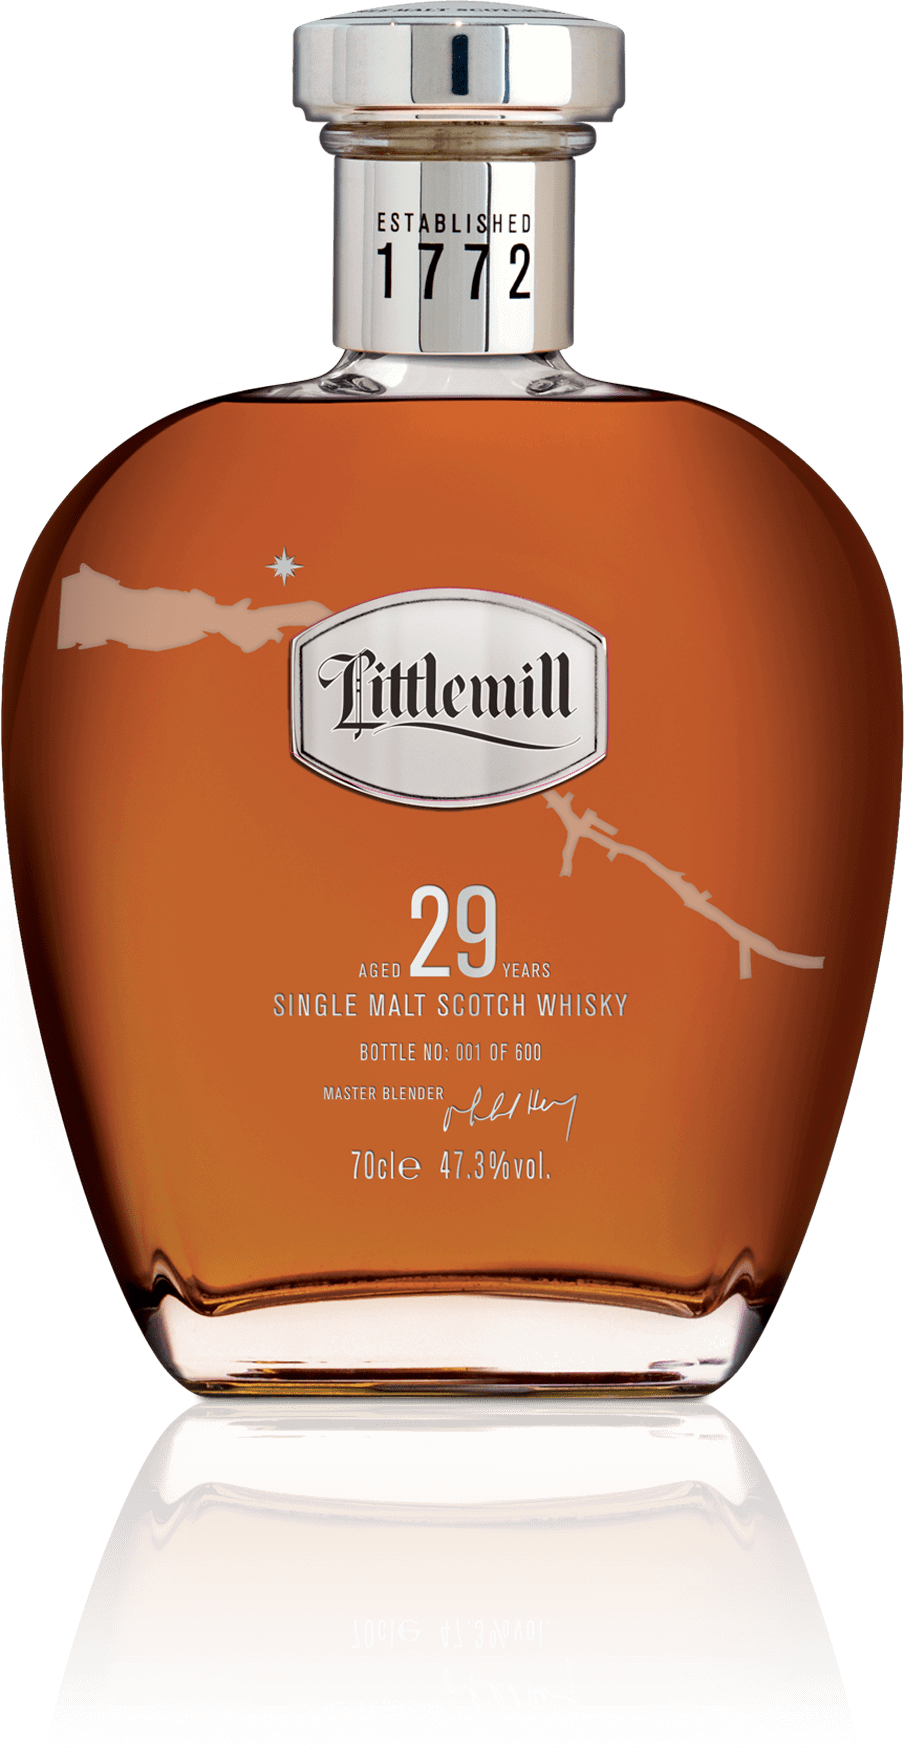 LITTLEMILL AGED 29 YEARS